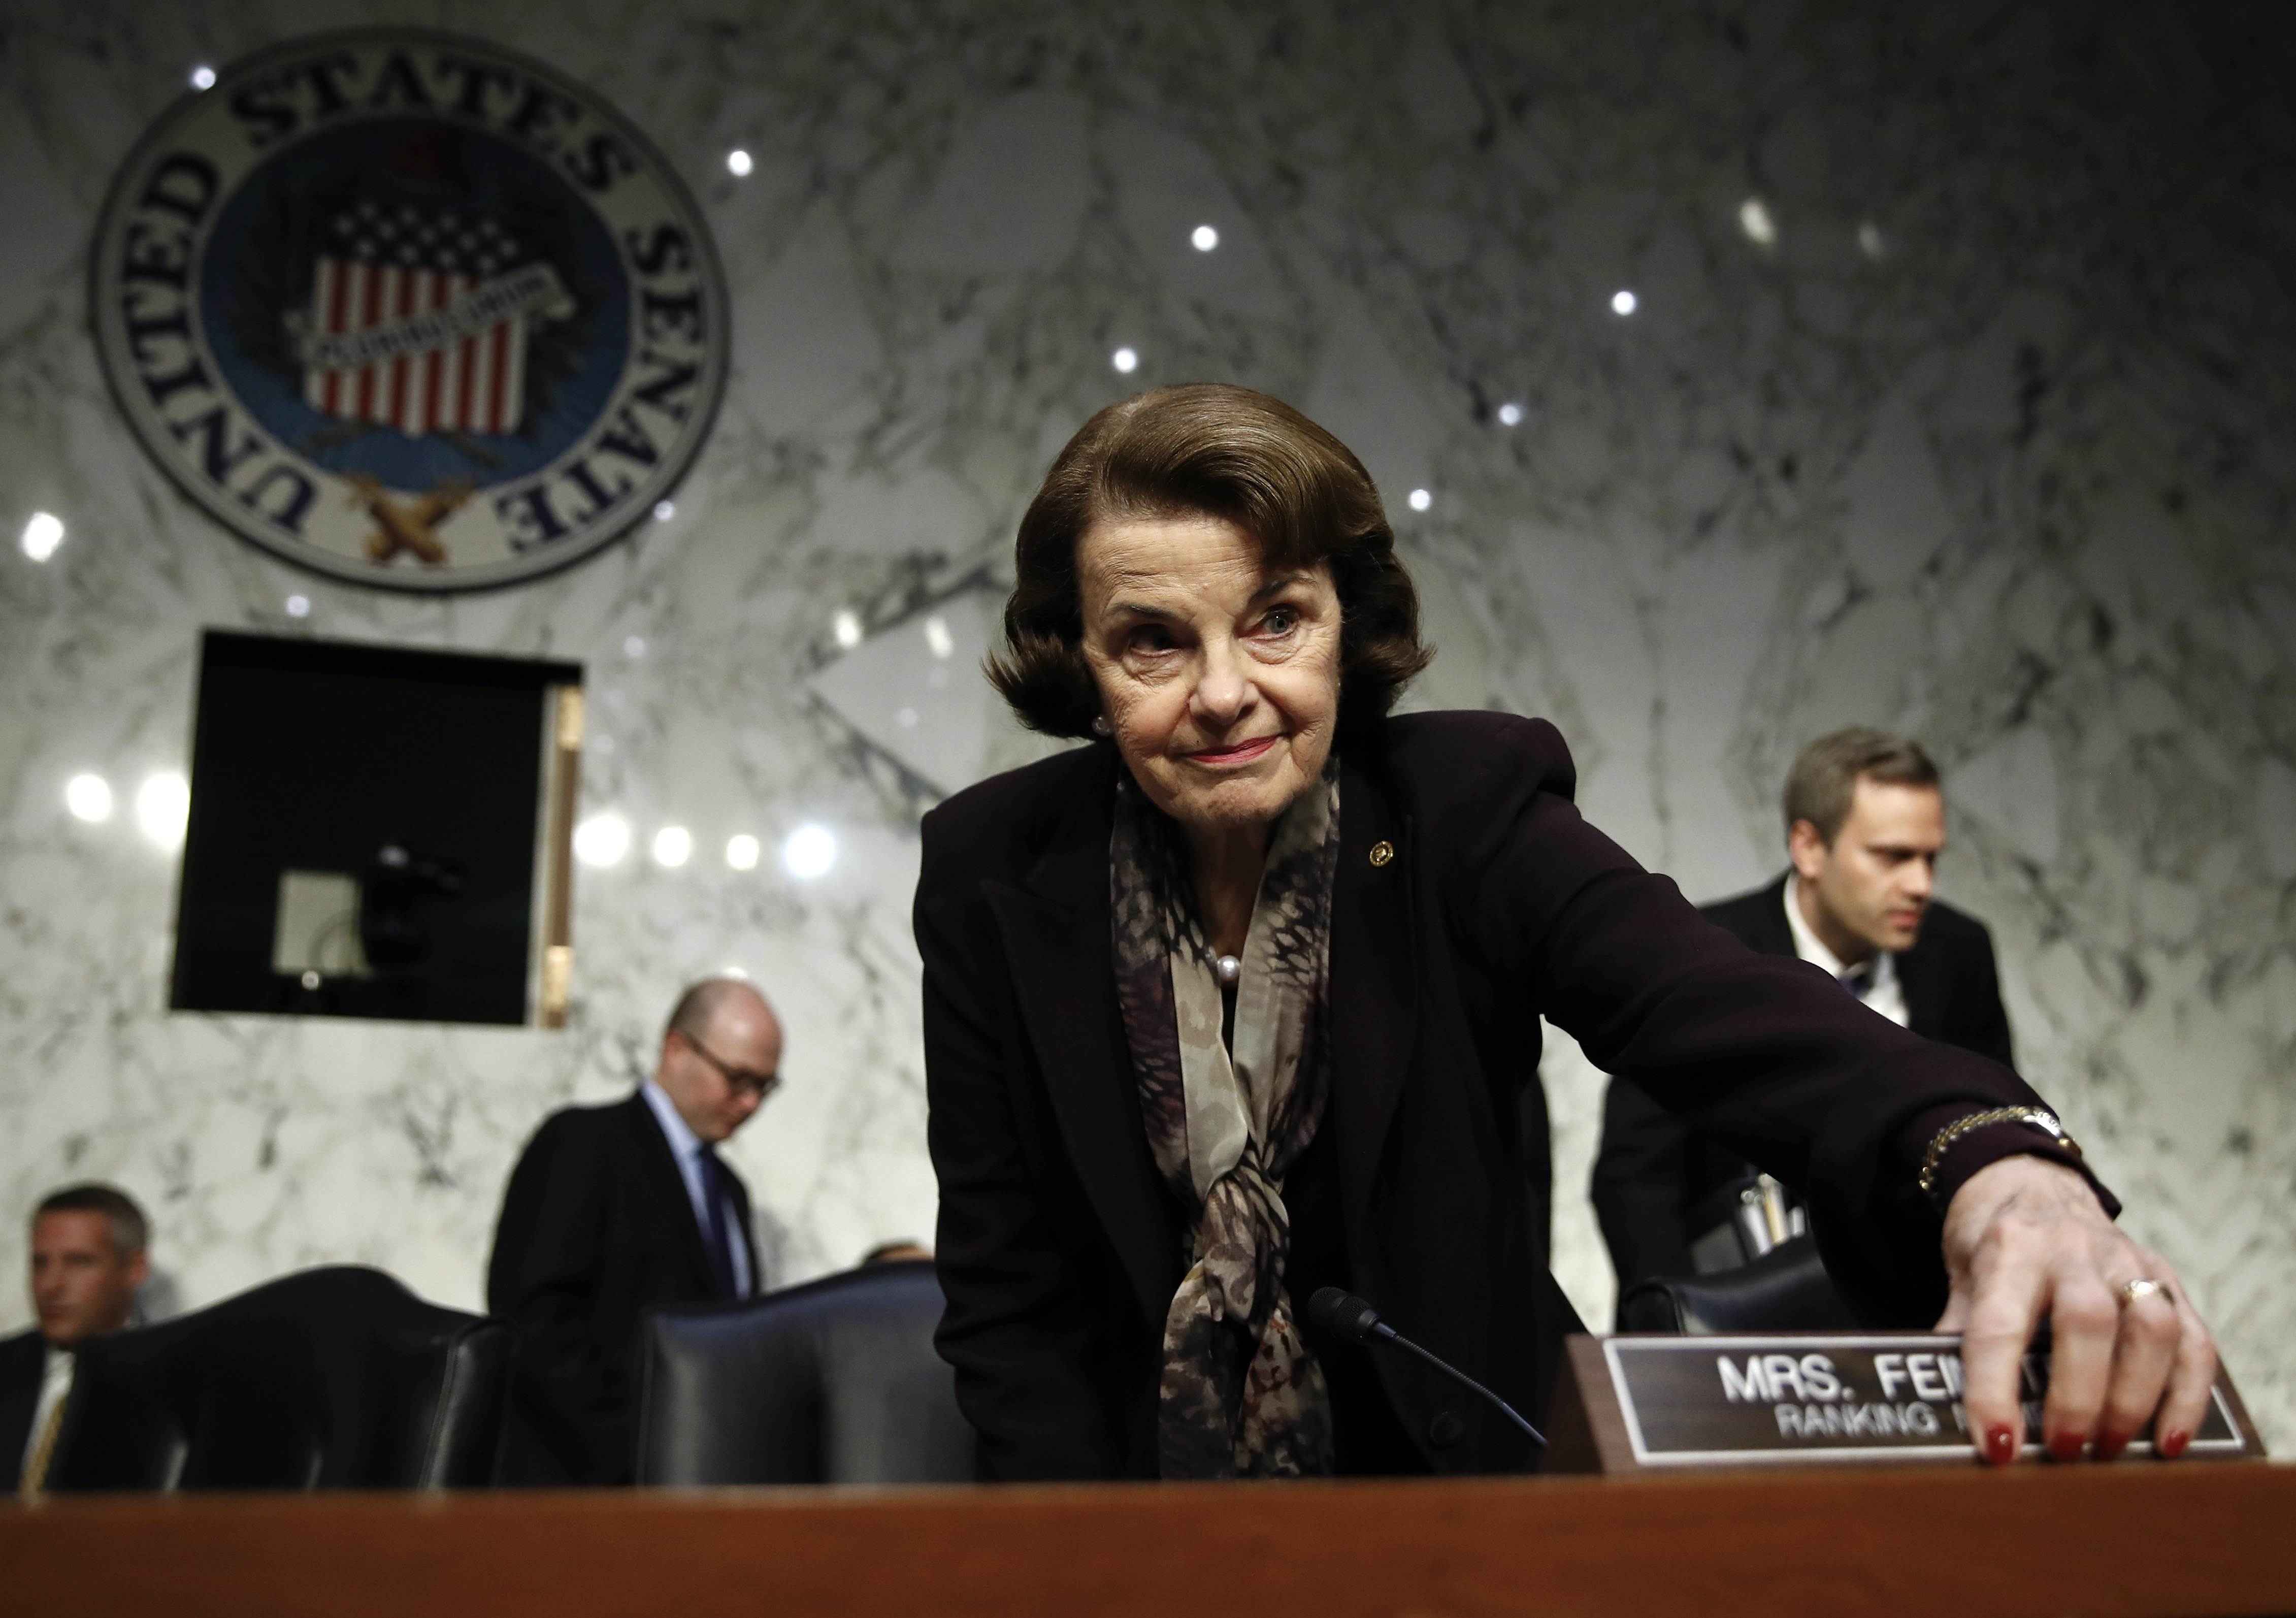 Senate Judiciary Committee ranking member Sen. Dianne Feinstein, D-California, arrives for a hearing of the committee, on Capitol Hill in Washington, Dec. 6, 2017.